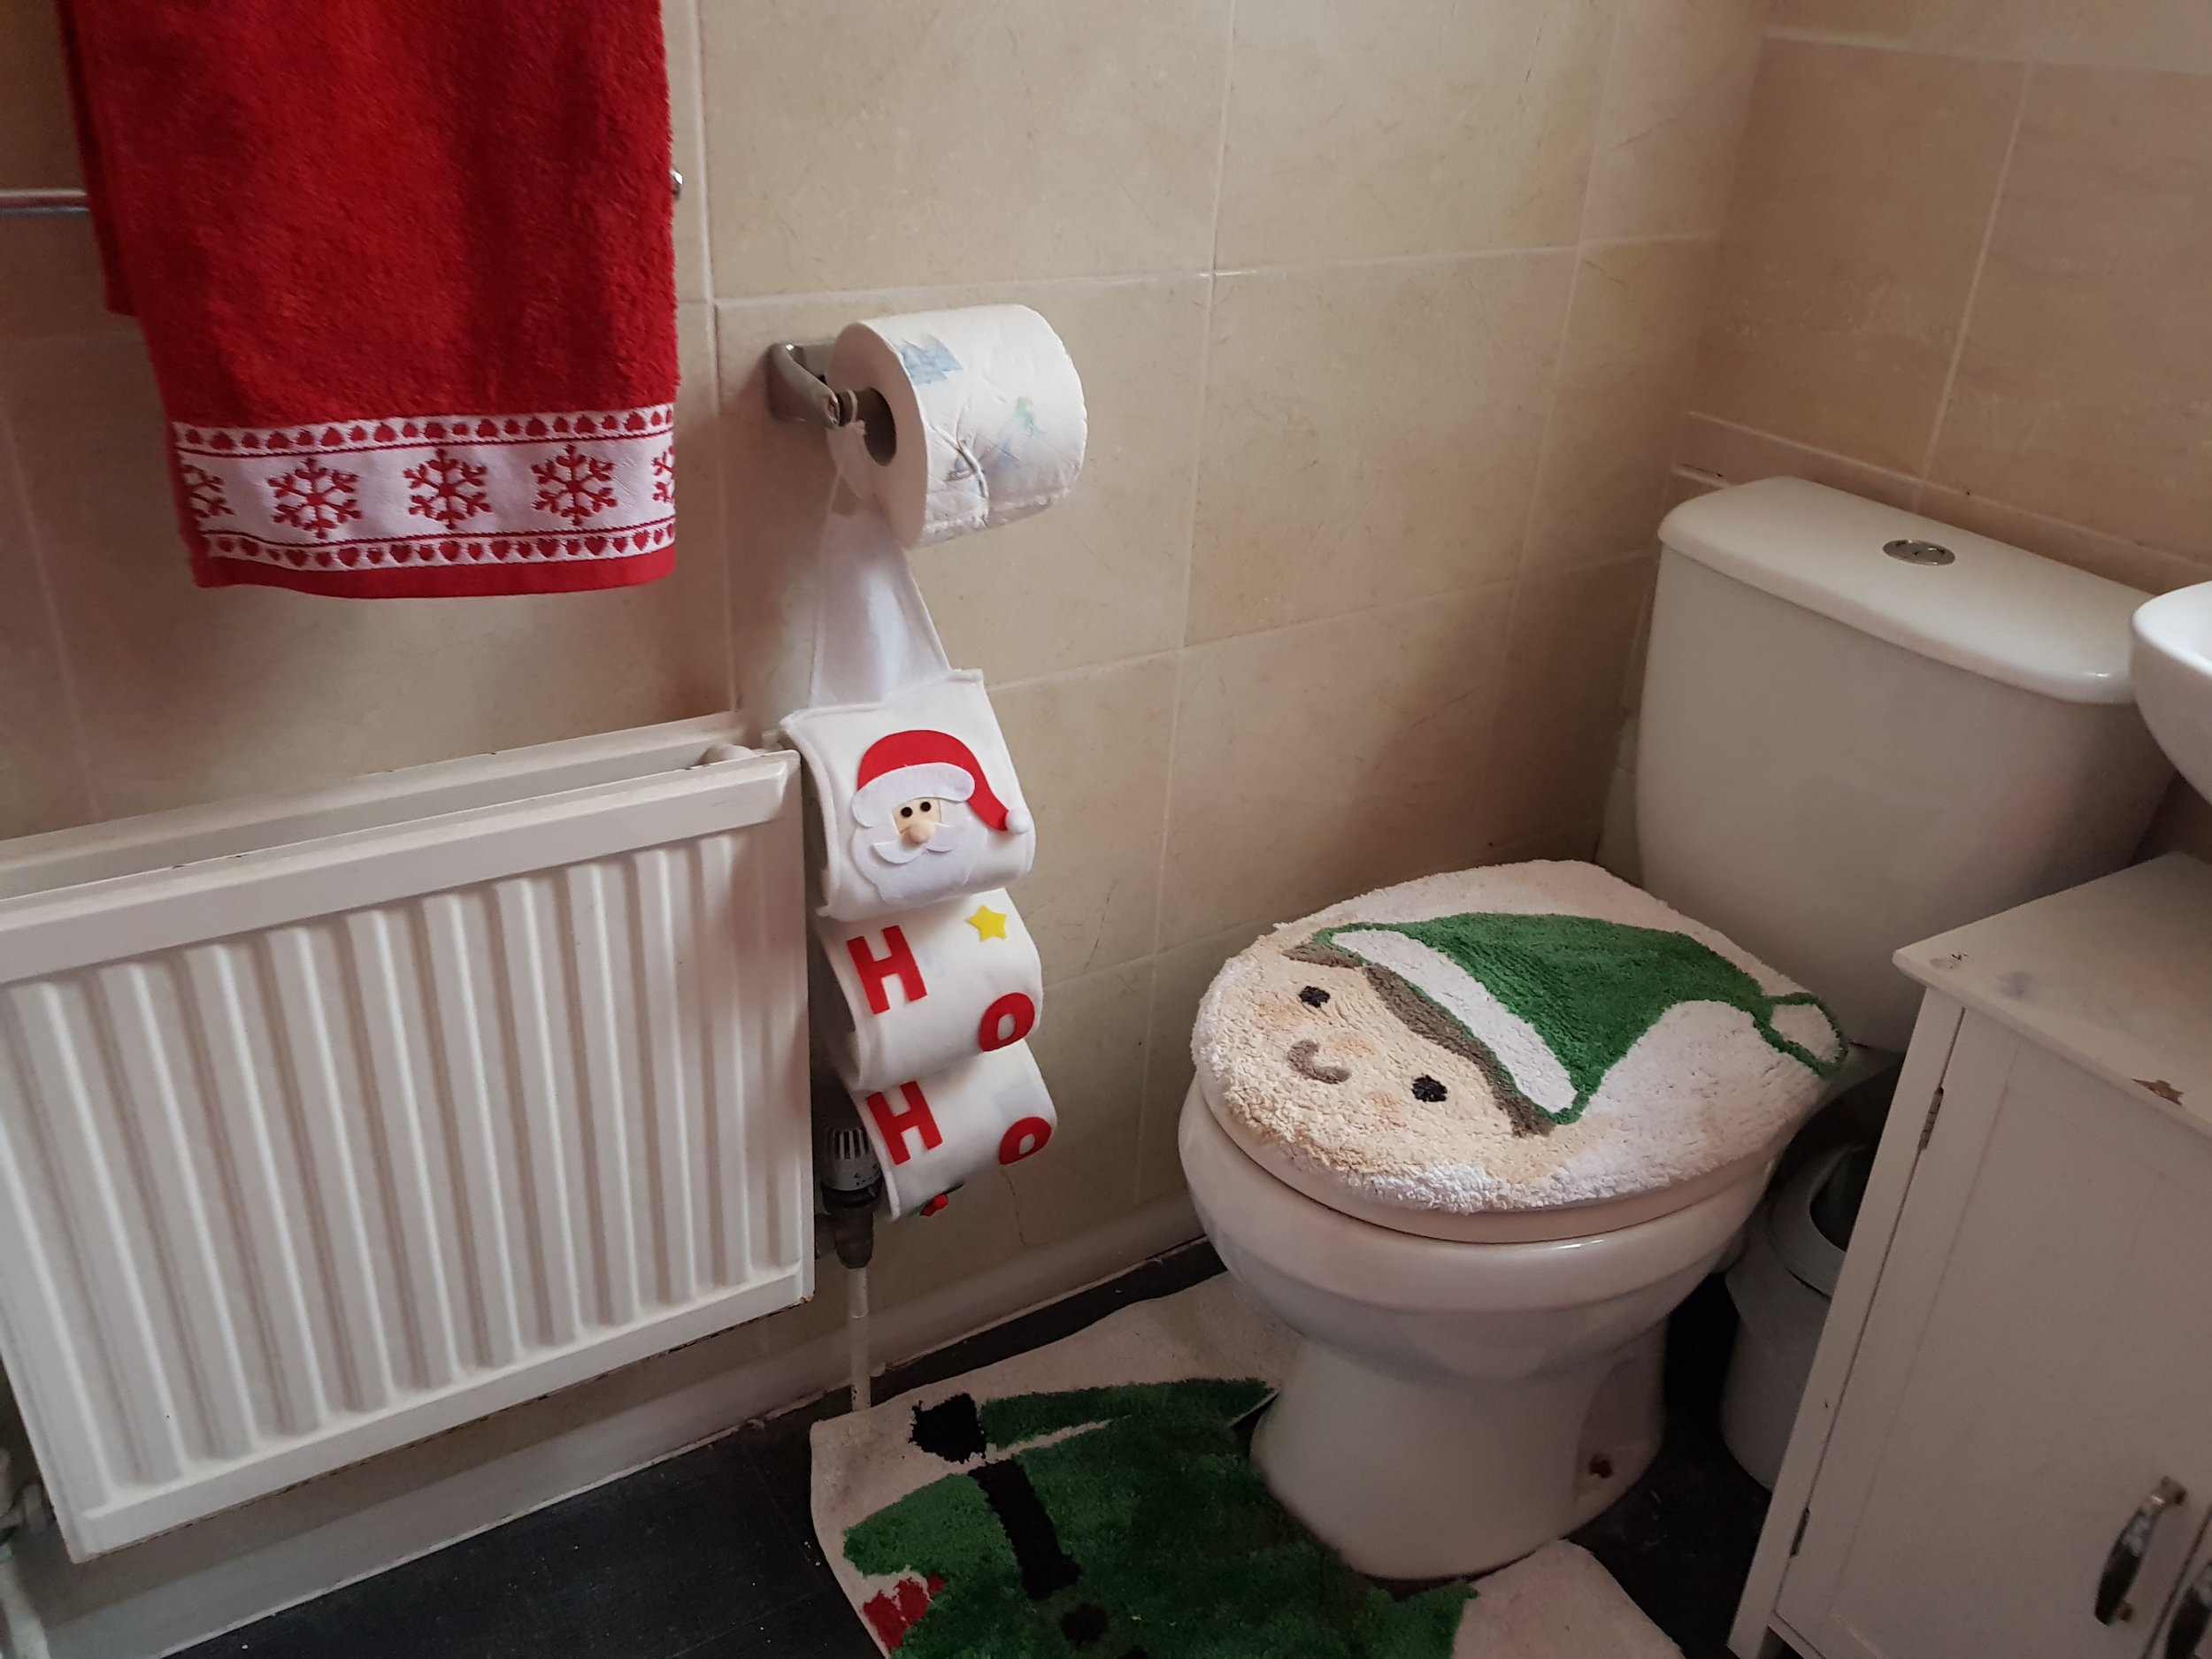 Christmas toilet cover, toilet rolls and towels